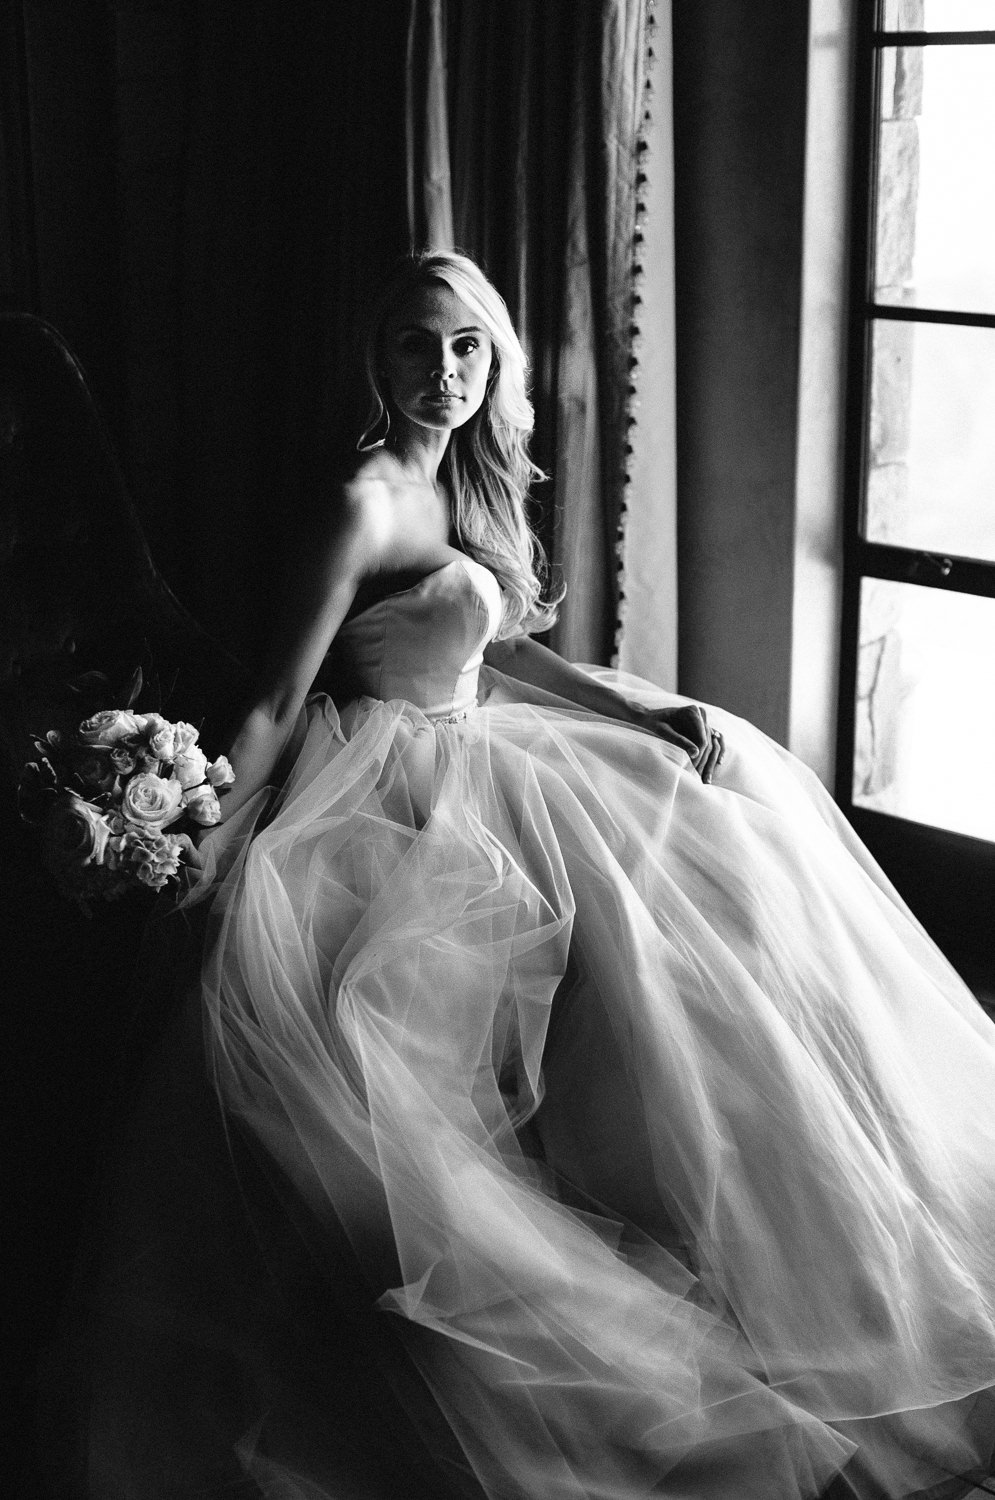 Malibu Rocky Oaks Photographer - Gorgeous Bride in Black and White